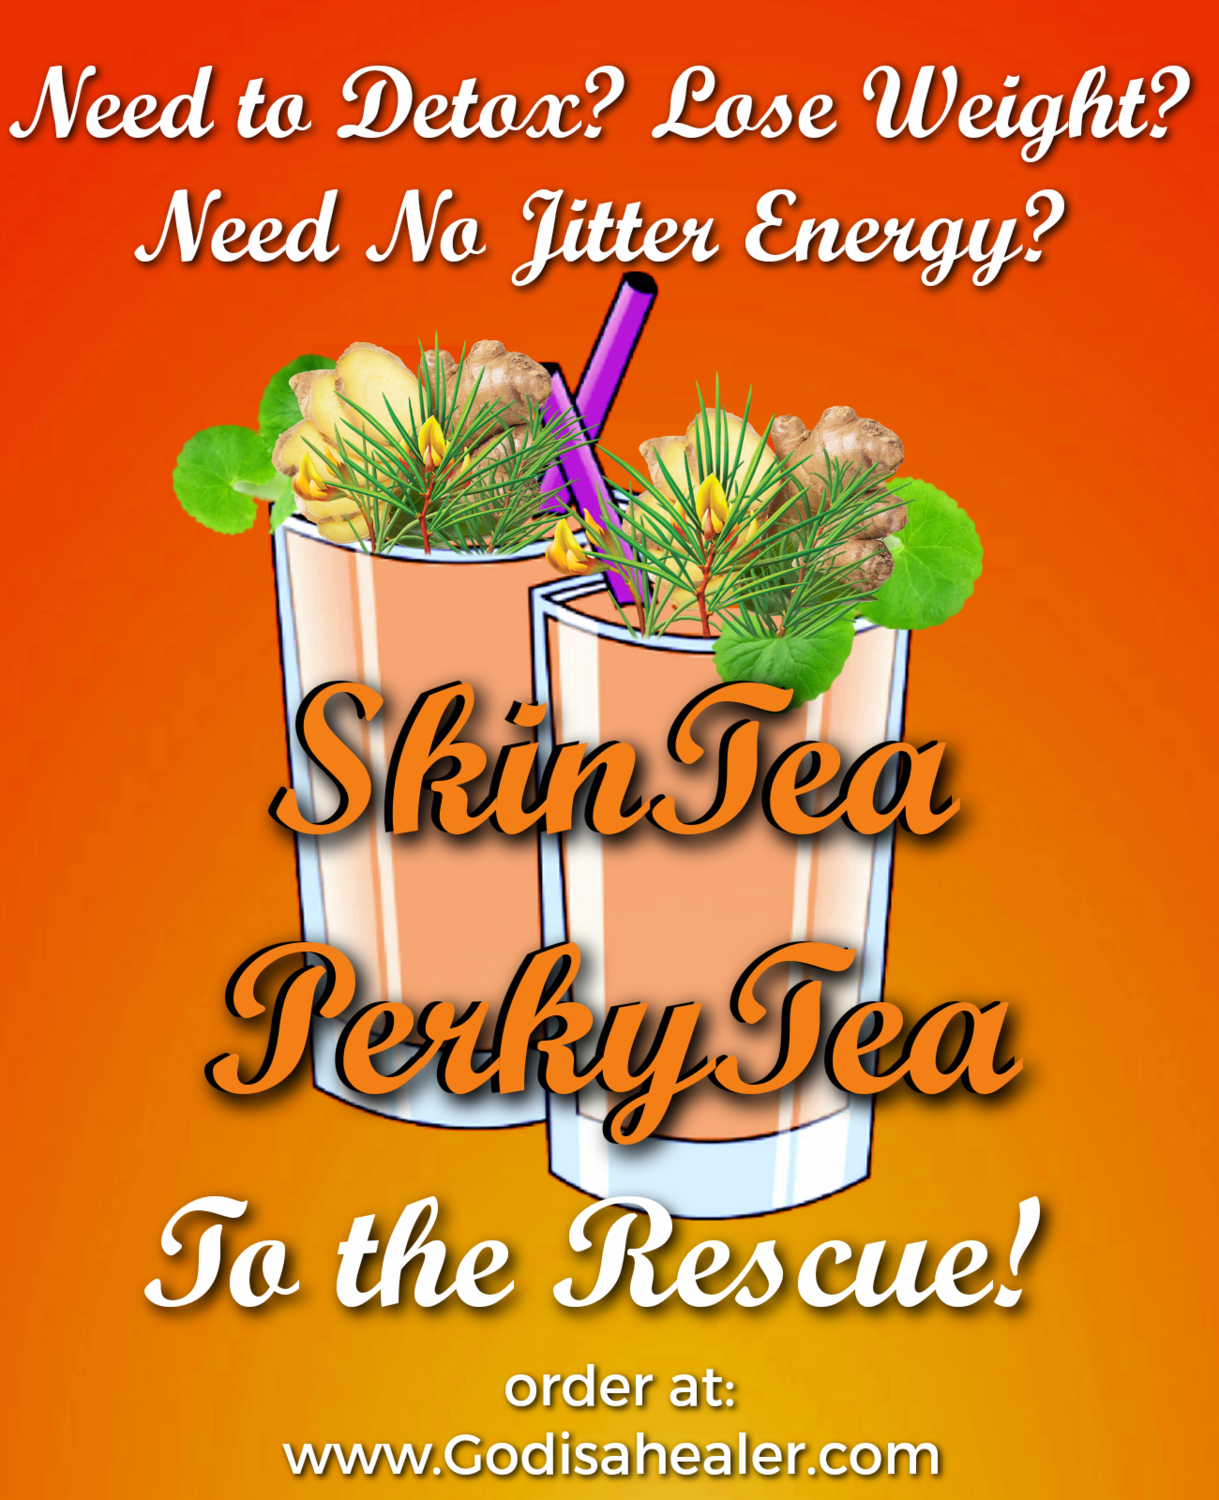 (SkinTea Perky Tea Weightloss Detox Energy Tea) One  Gallon teabag  Regain energy, clarity, and alertness without jitters. Appetite suppressant. Weight loss, liver detox, mild stool softener.